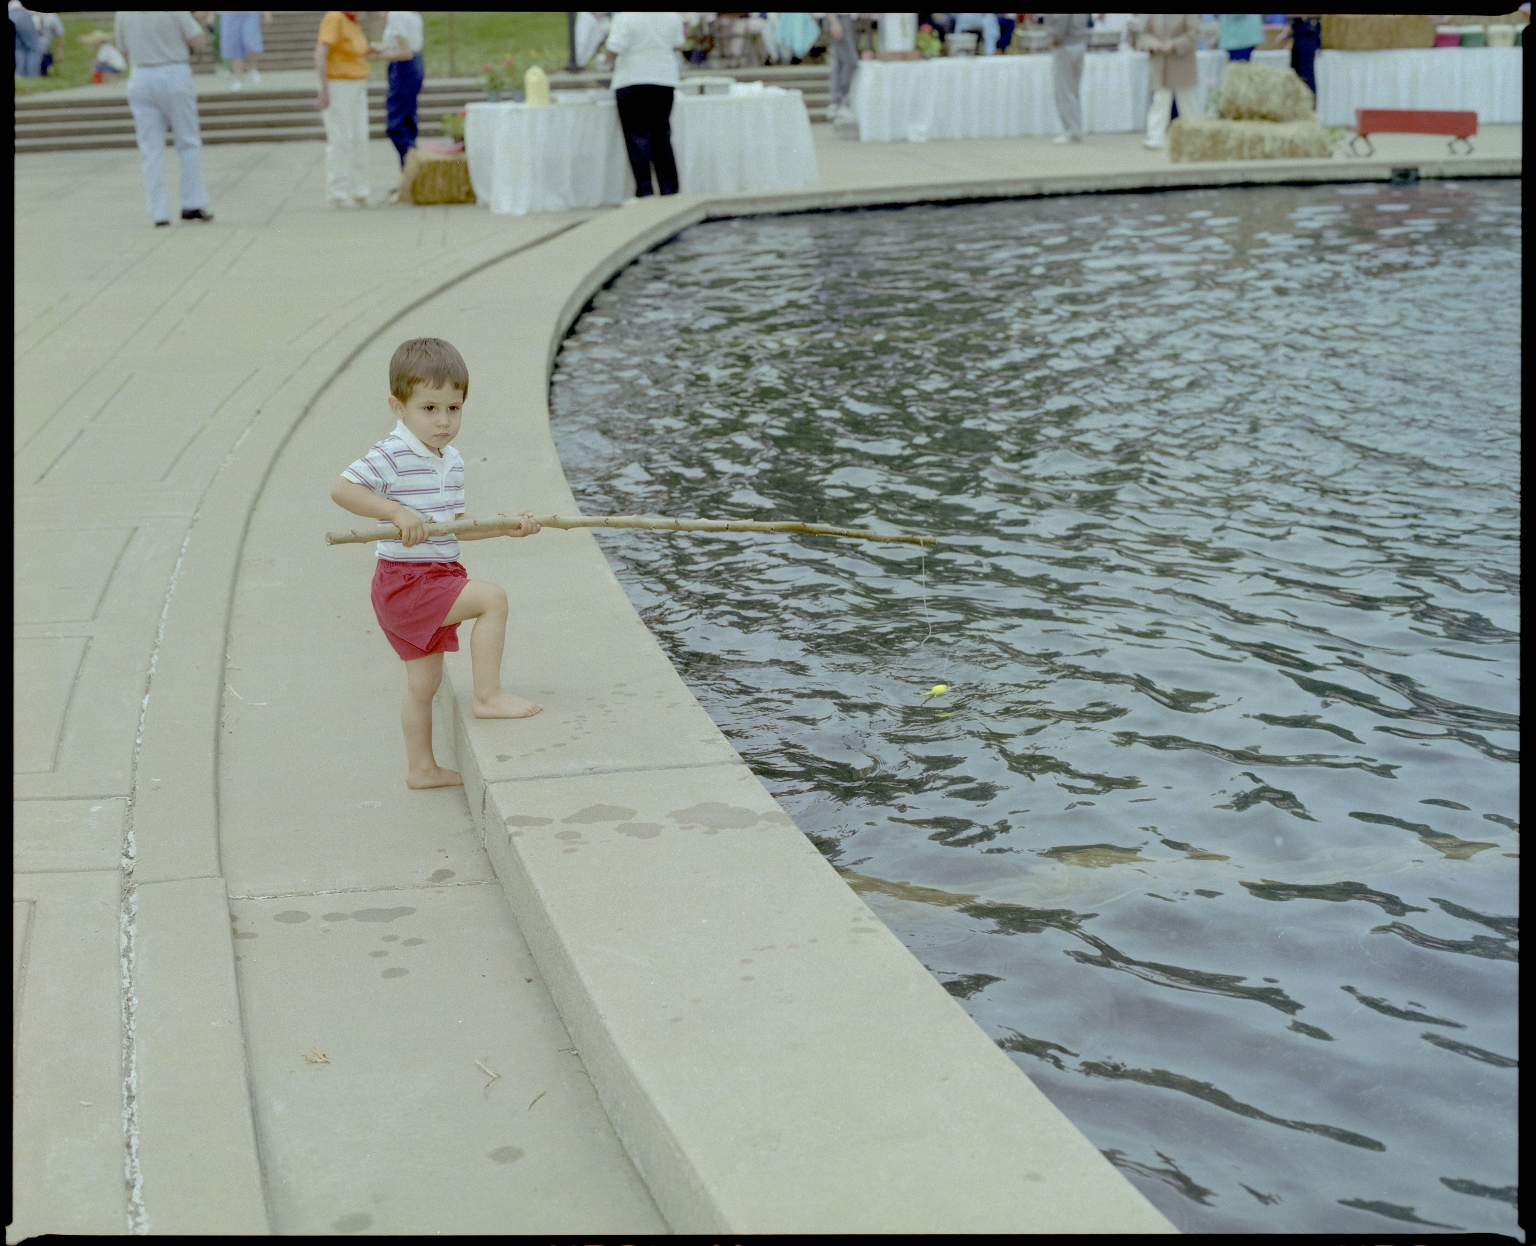 Barefoot Fishing in the Fountain